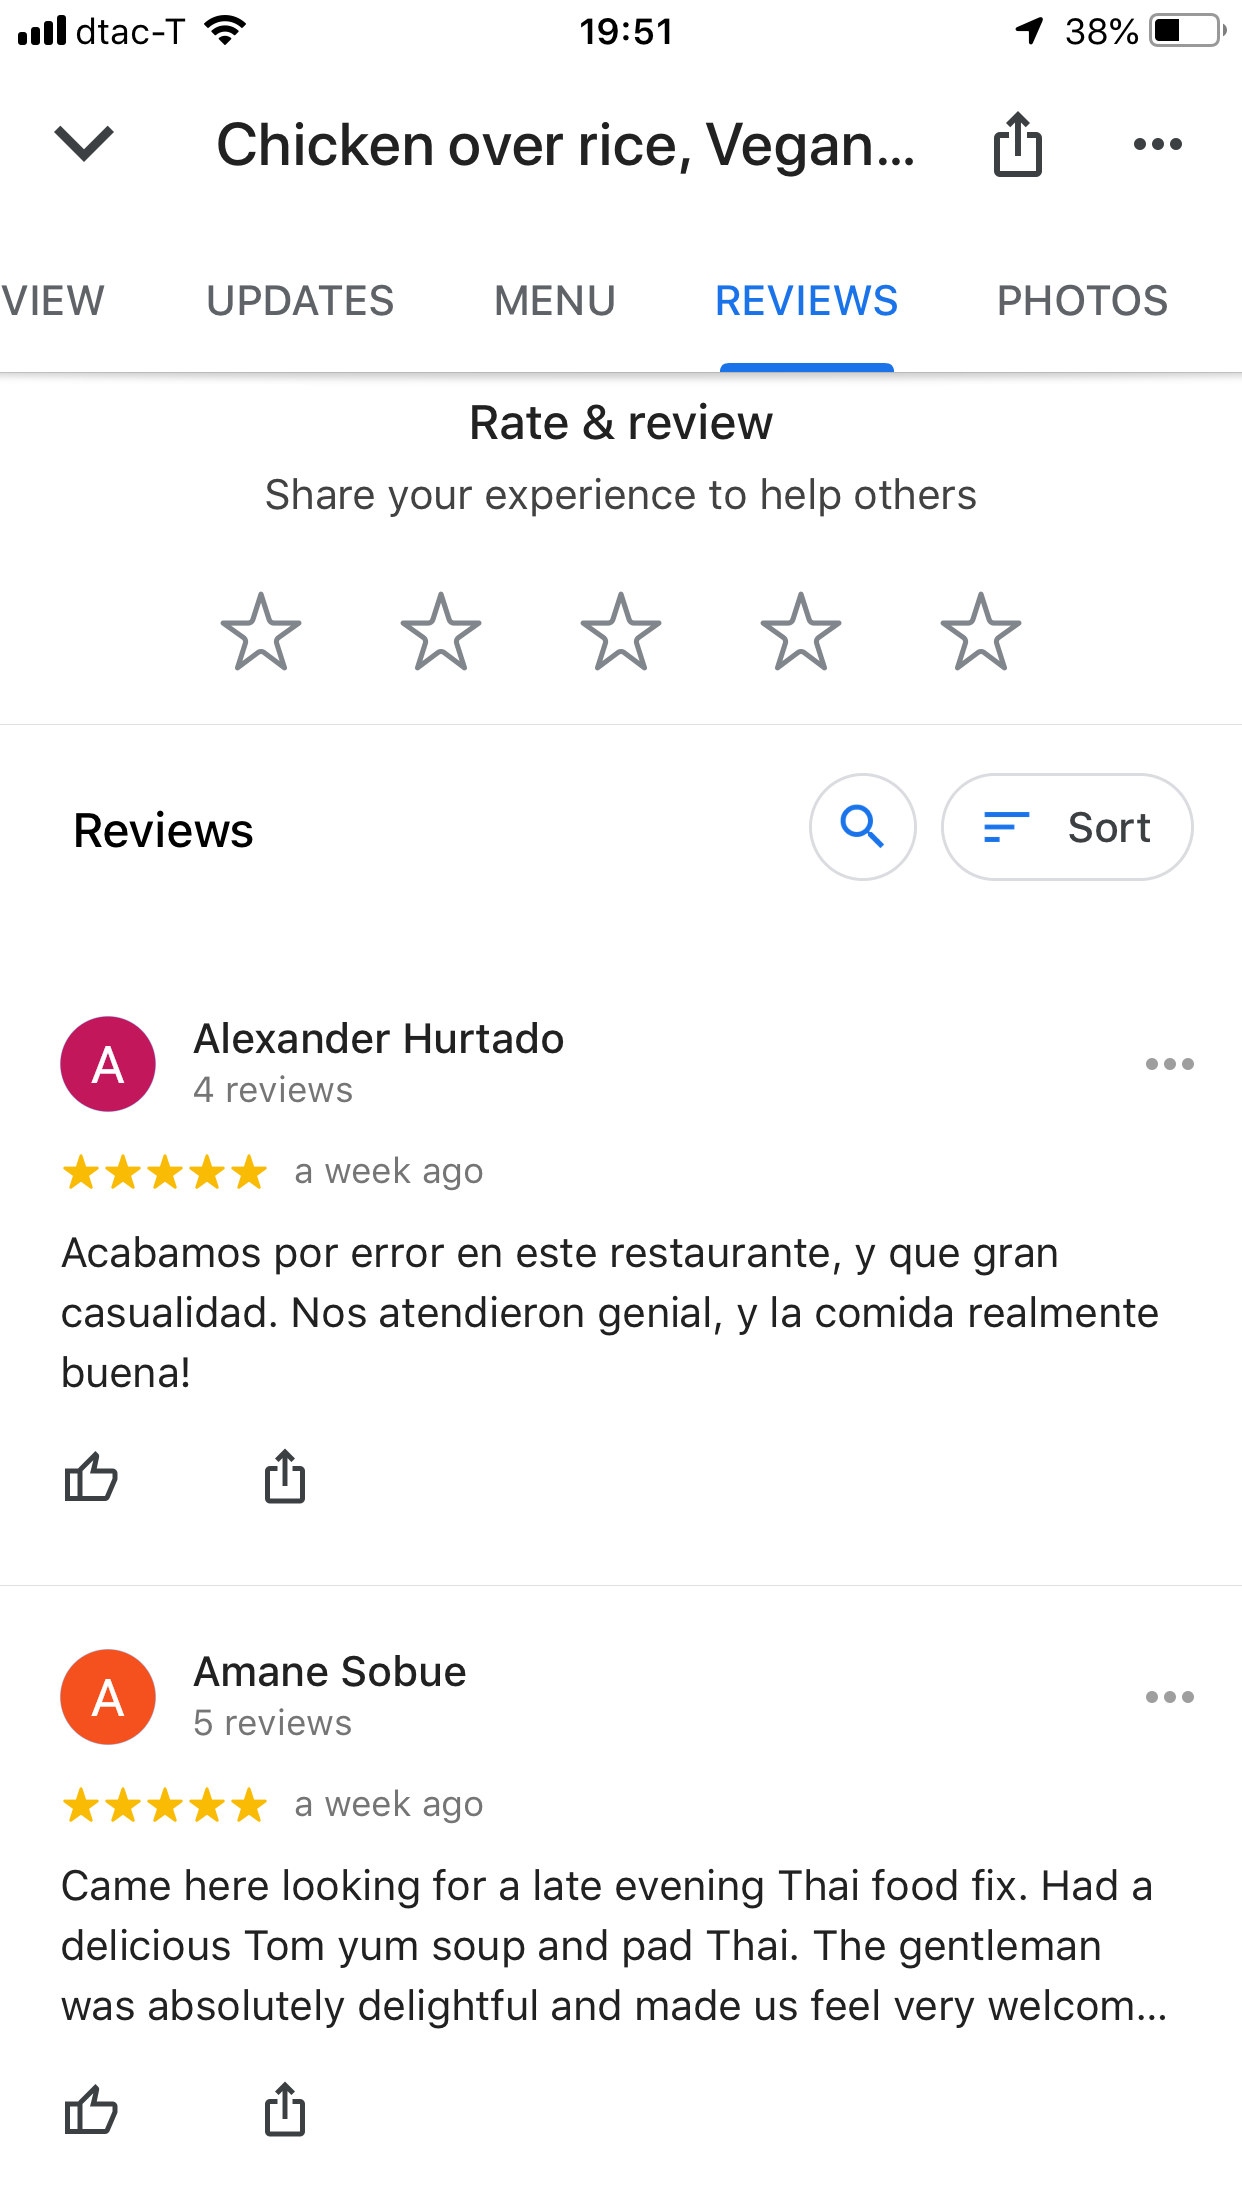 How can I 'pull' the last 2 reviews from this former place ... Google Map Restaurant on online maps, topographic maps, waze maps, android maps, search maps, bing maps, goolge maps, gogole maps, googlr maps, iphone maps, ipad maps, googie maps, amazon fire phone maps, microsoft maps, road map usa states maps, aerial maps, stanford university maps, aeronautical maps, msn maps, gppgle maps,